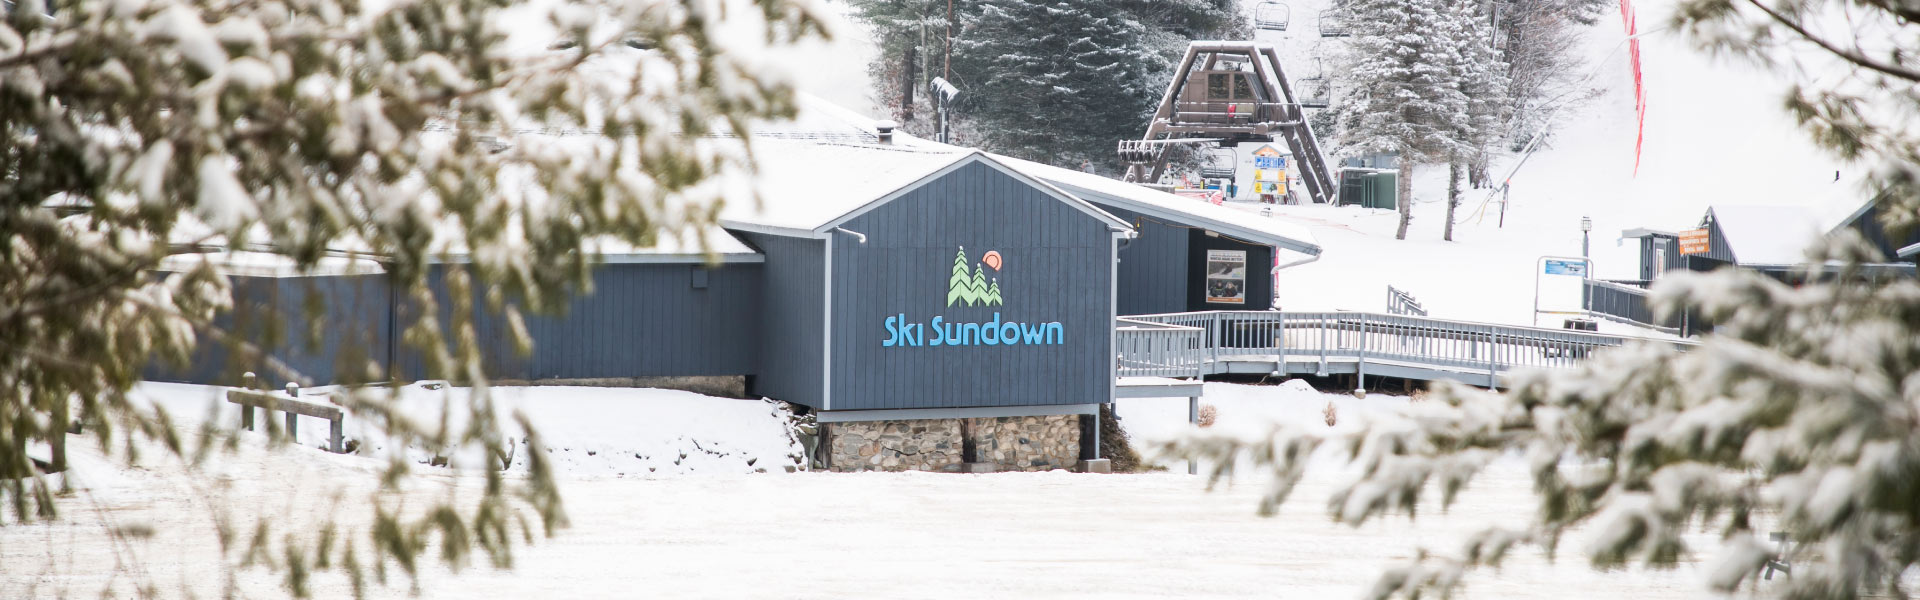 Snowy view of Ski Sundown base lodge